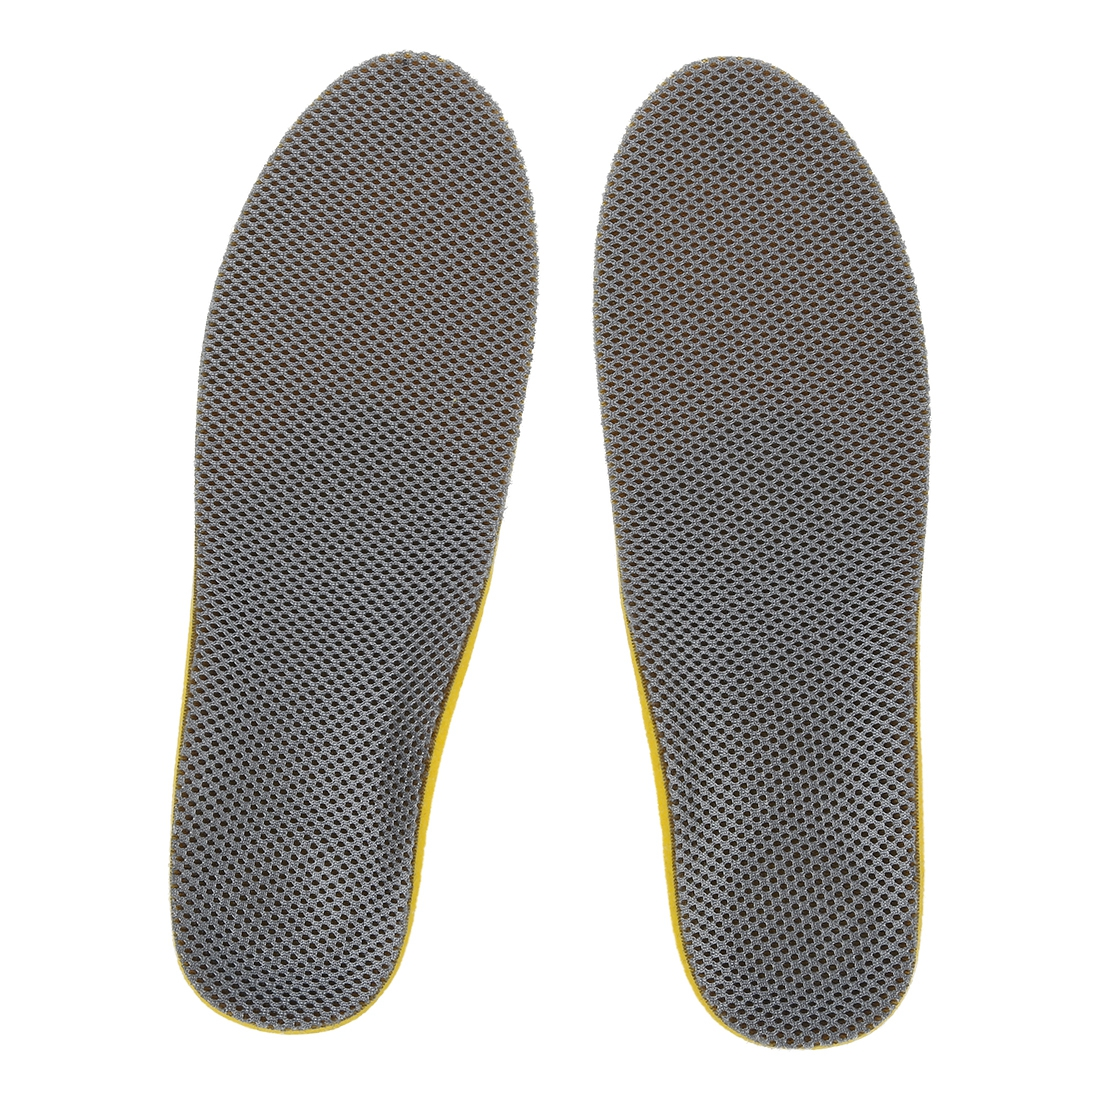 ABDB Comfortable Orthotic Shoes Insoles Inserts High Arch Support Pad L